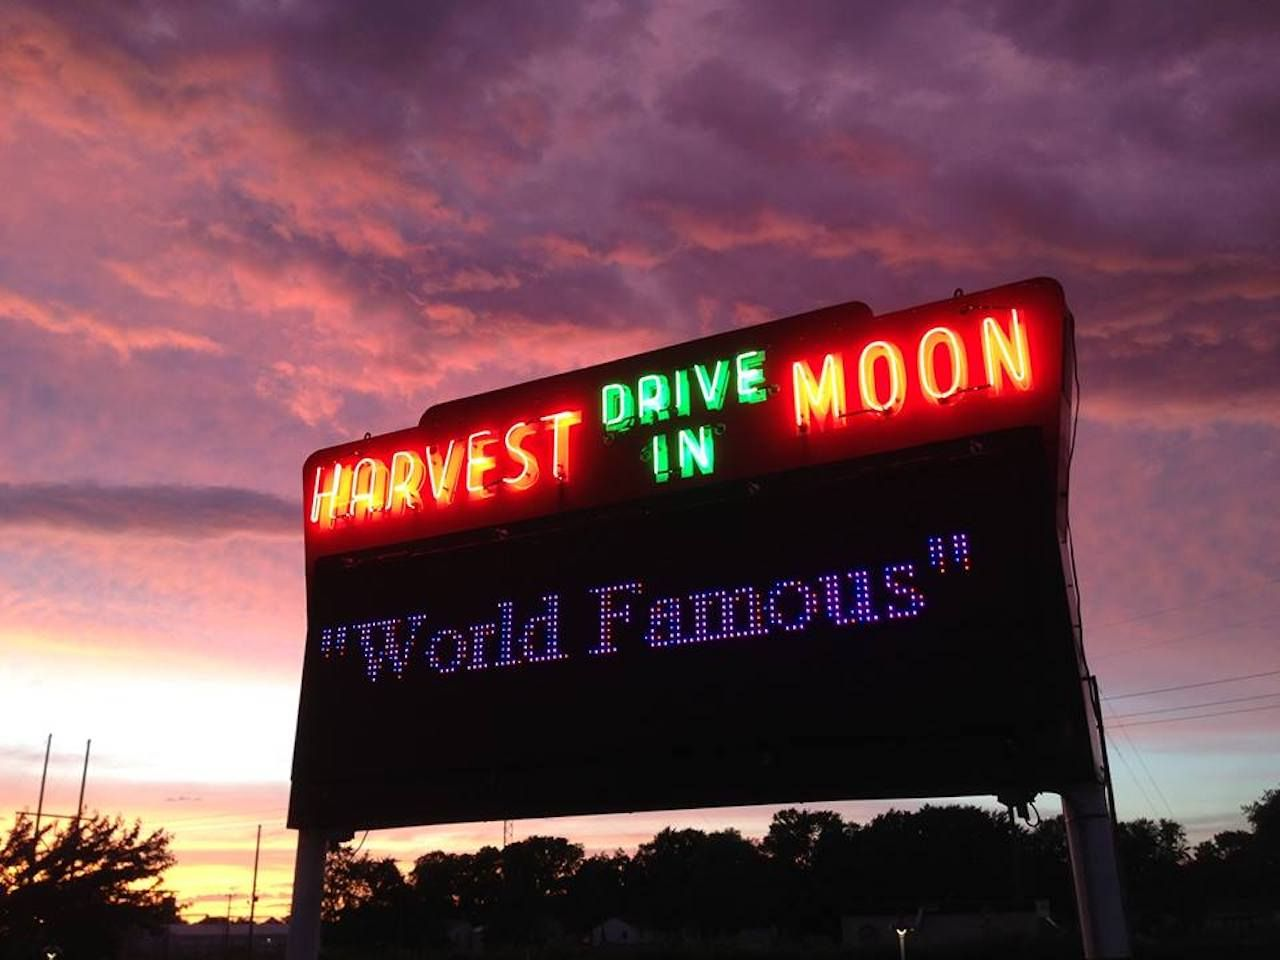 Harvest Moon Twin Drive-in Theatre